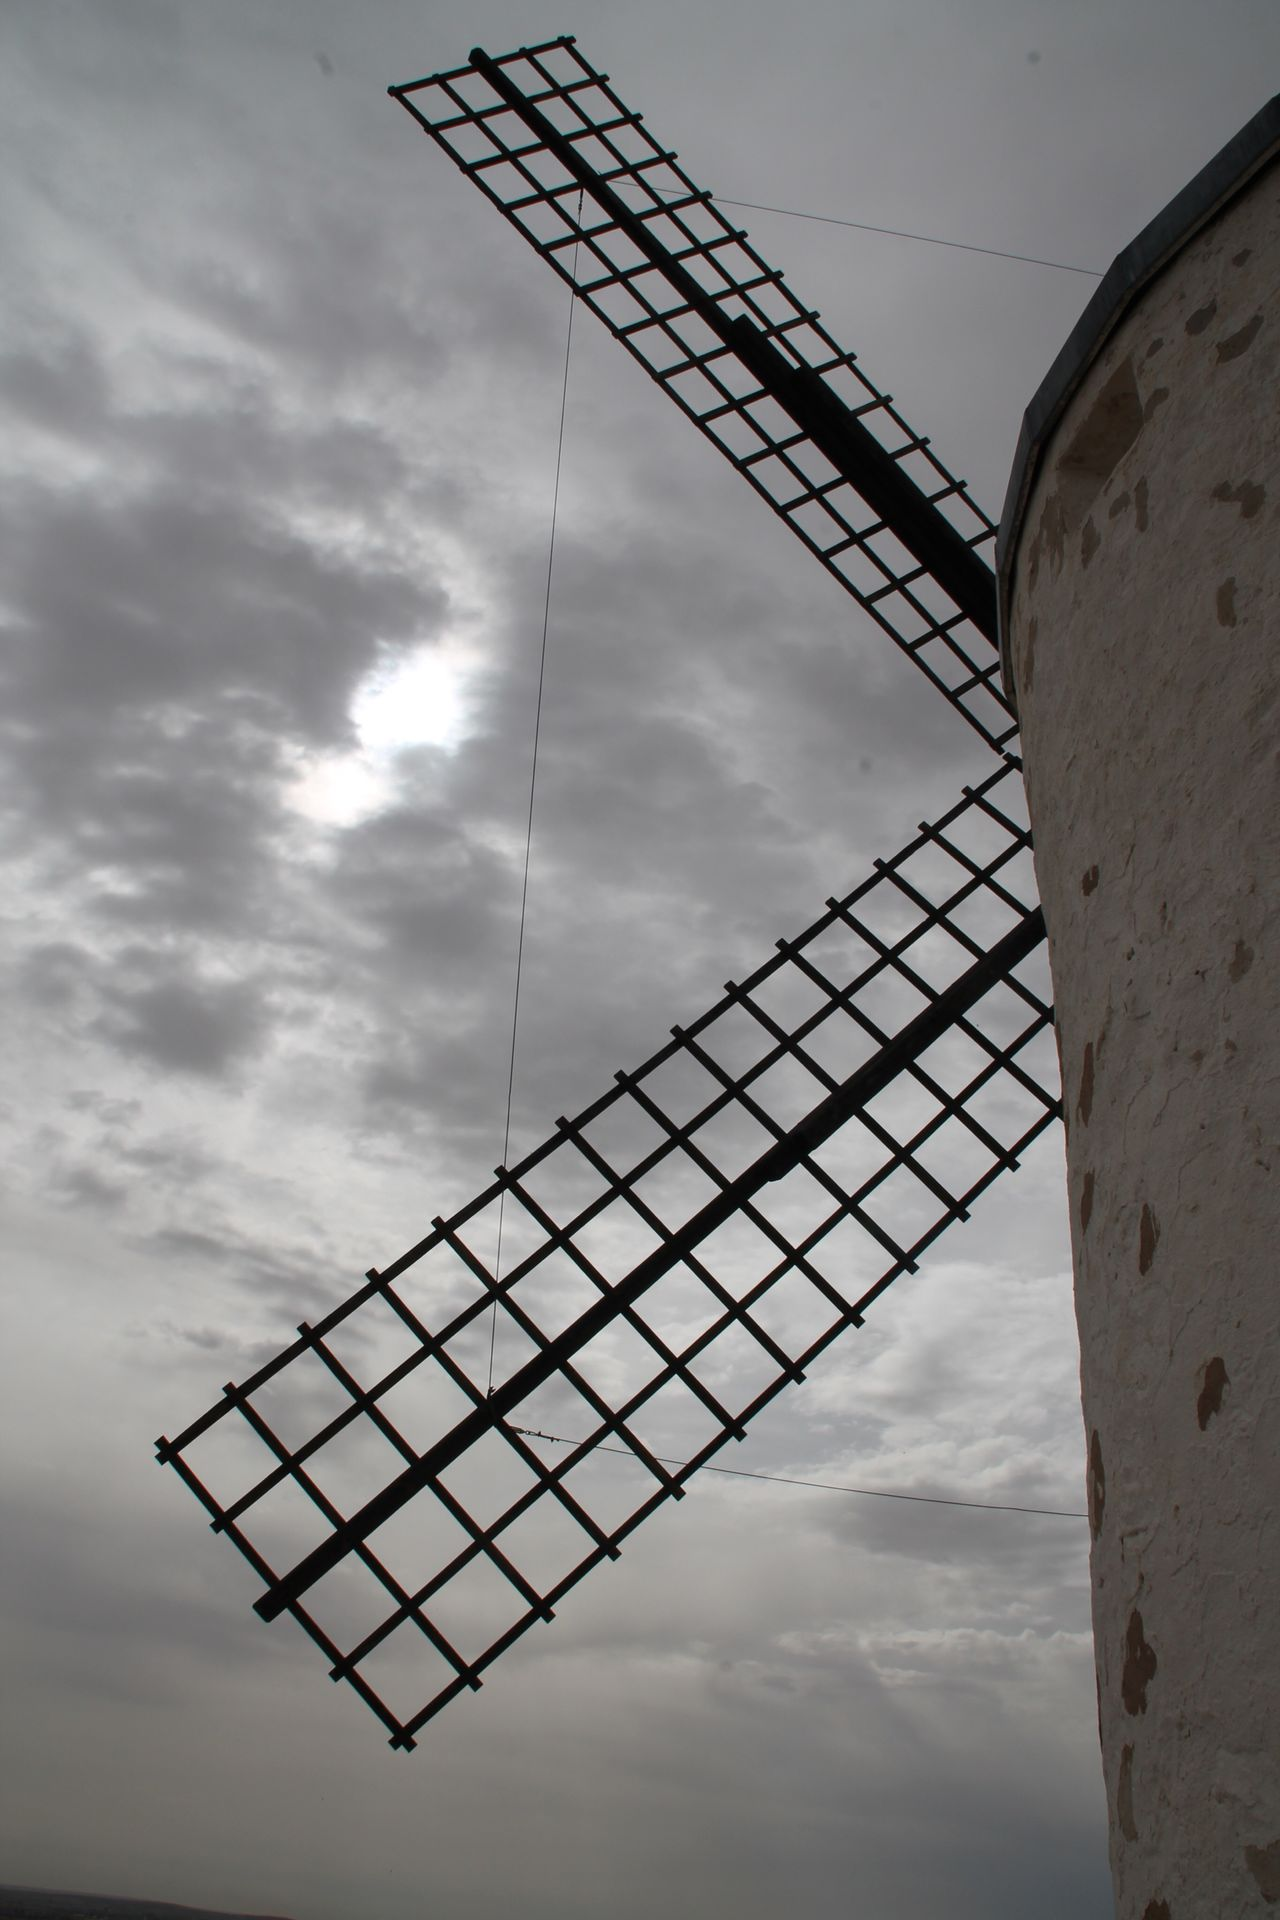 Sky Low Angle View Cloud - Sky Architecture No People Built Structure Day Outdoors Windmill Wind Power Wind Power Windmill Consuegra La Mancha Taking Photos Check This Out Traditional Windmill Travel Destinations Hanging Out Rural Scene Building Exterior Architecture Sky And Clouds Nature Rear View